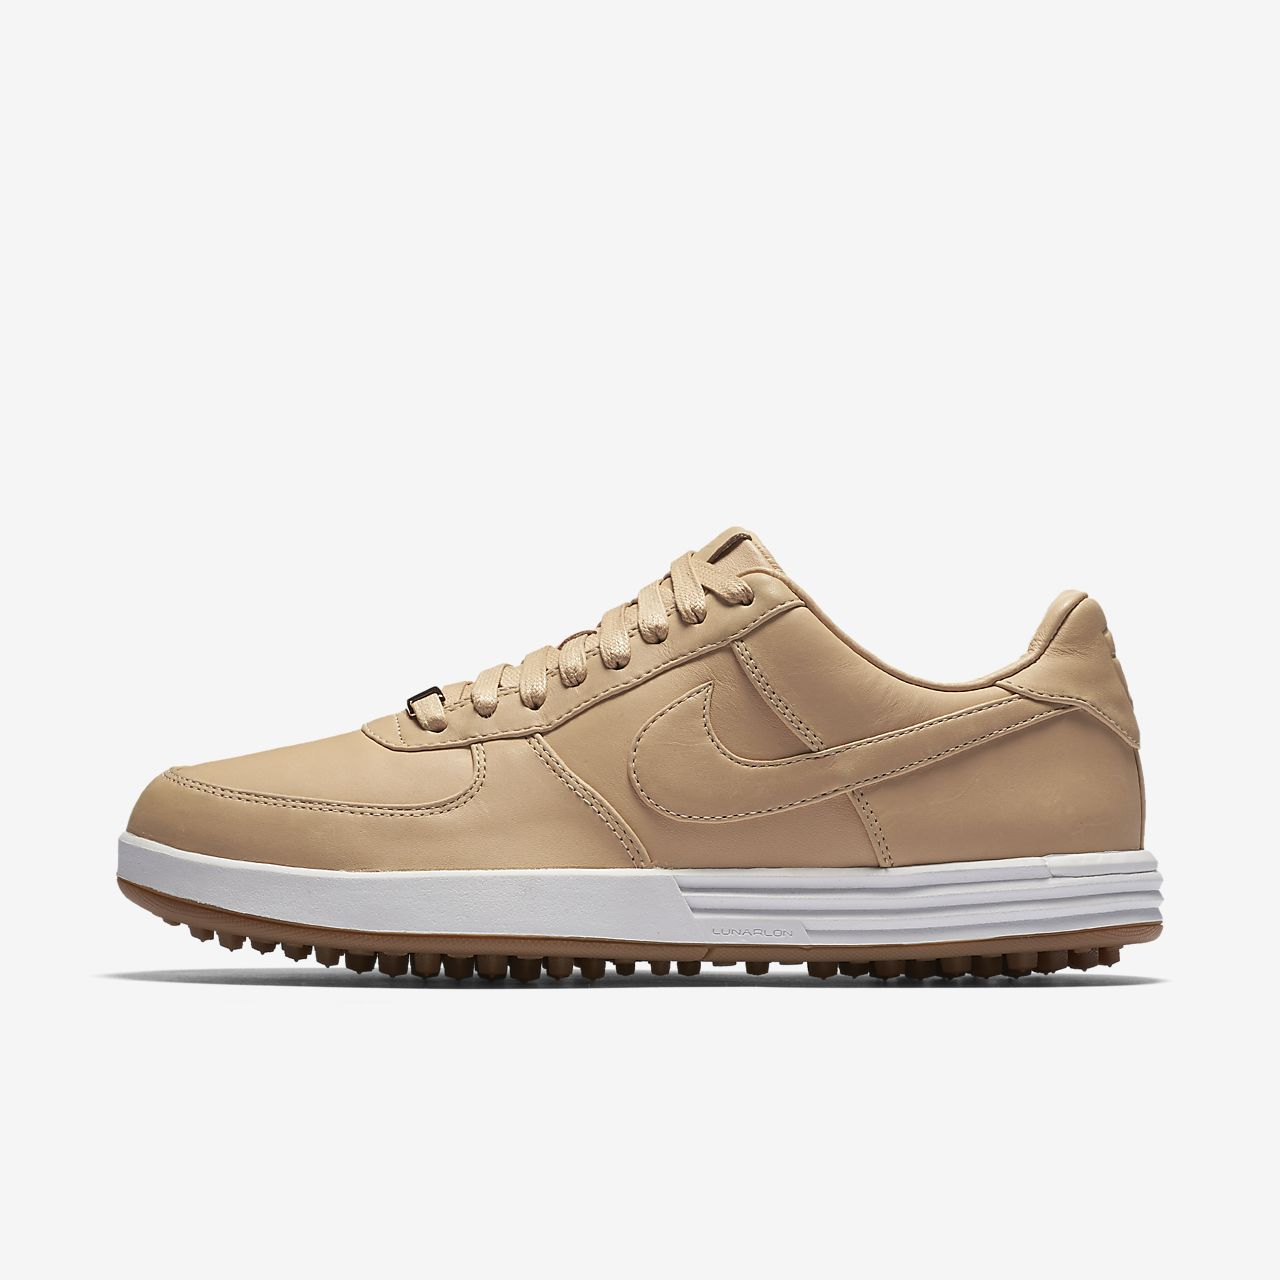 Nike Lunar Force 1 G Premium Men's Golf Shoe